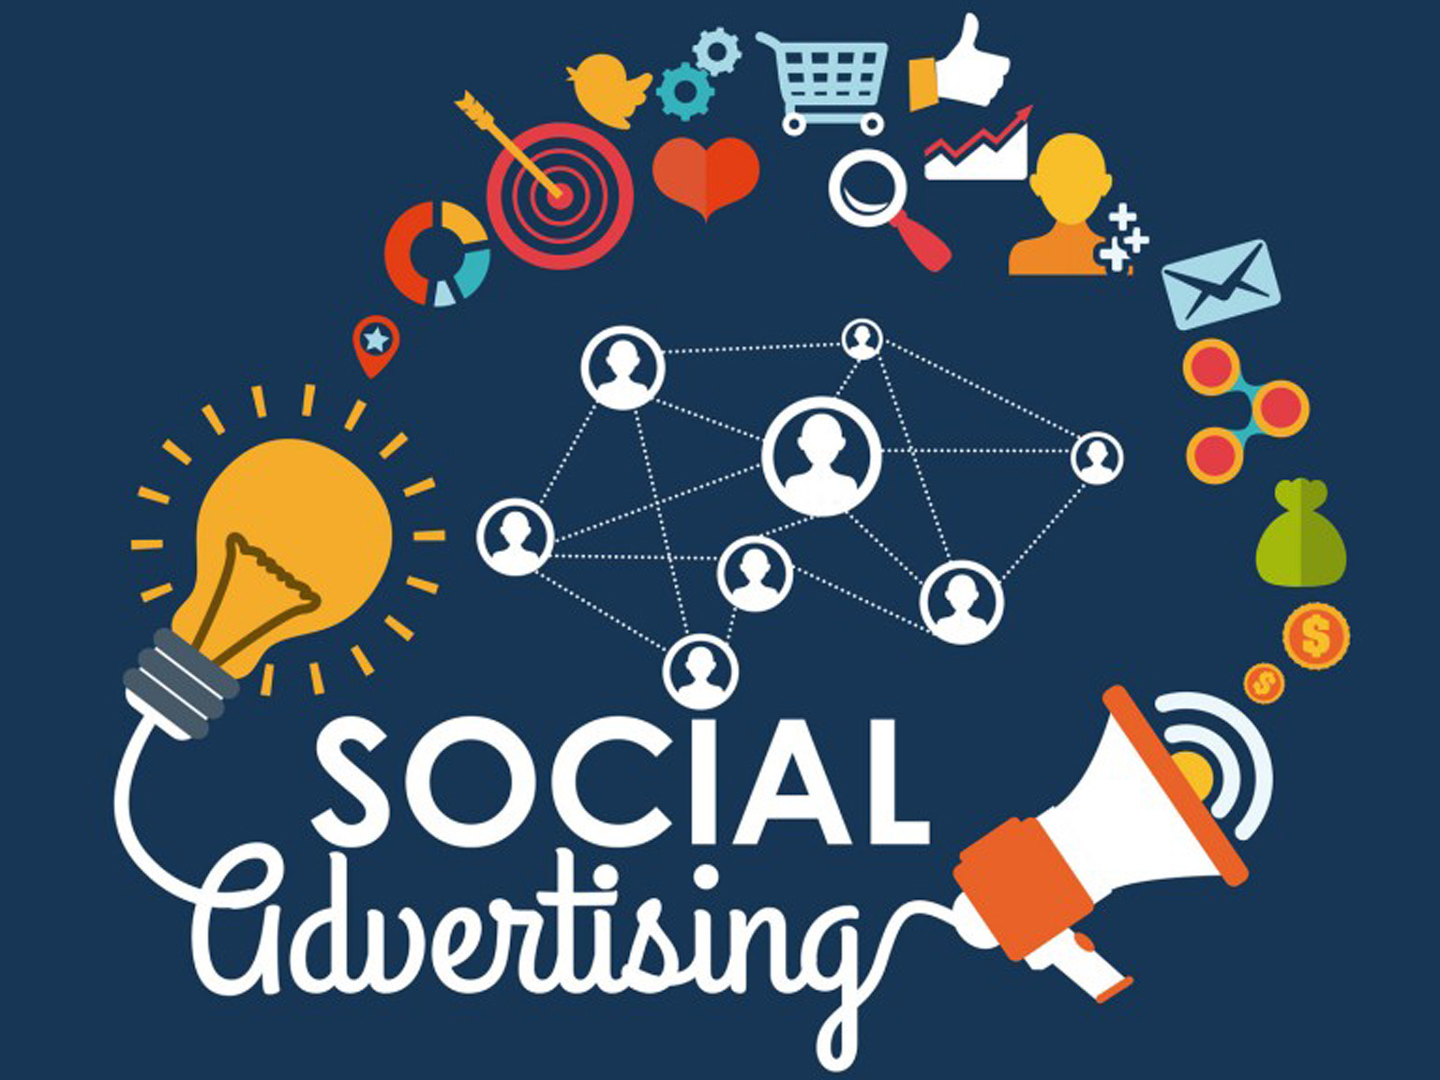 social media advertising Updated for 2017 looking to outsource here's a rundown of the costs of social media marketing, both for big agencies and small social media consultants.